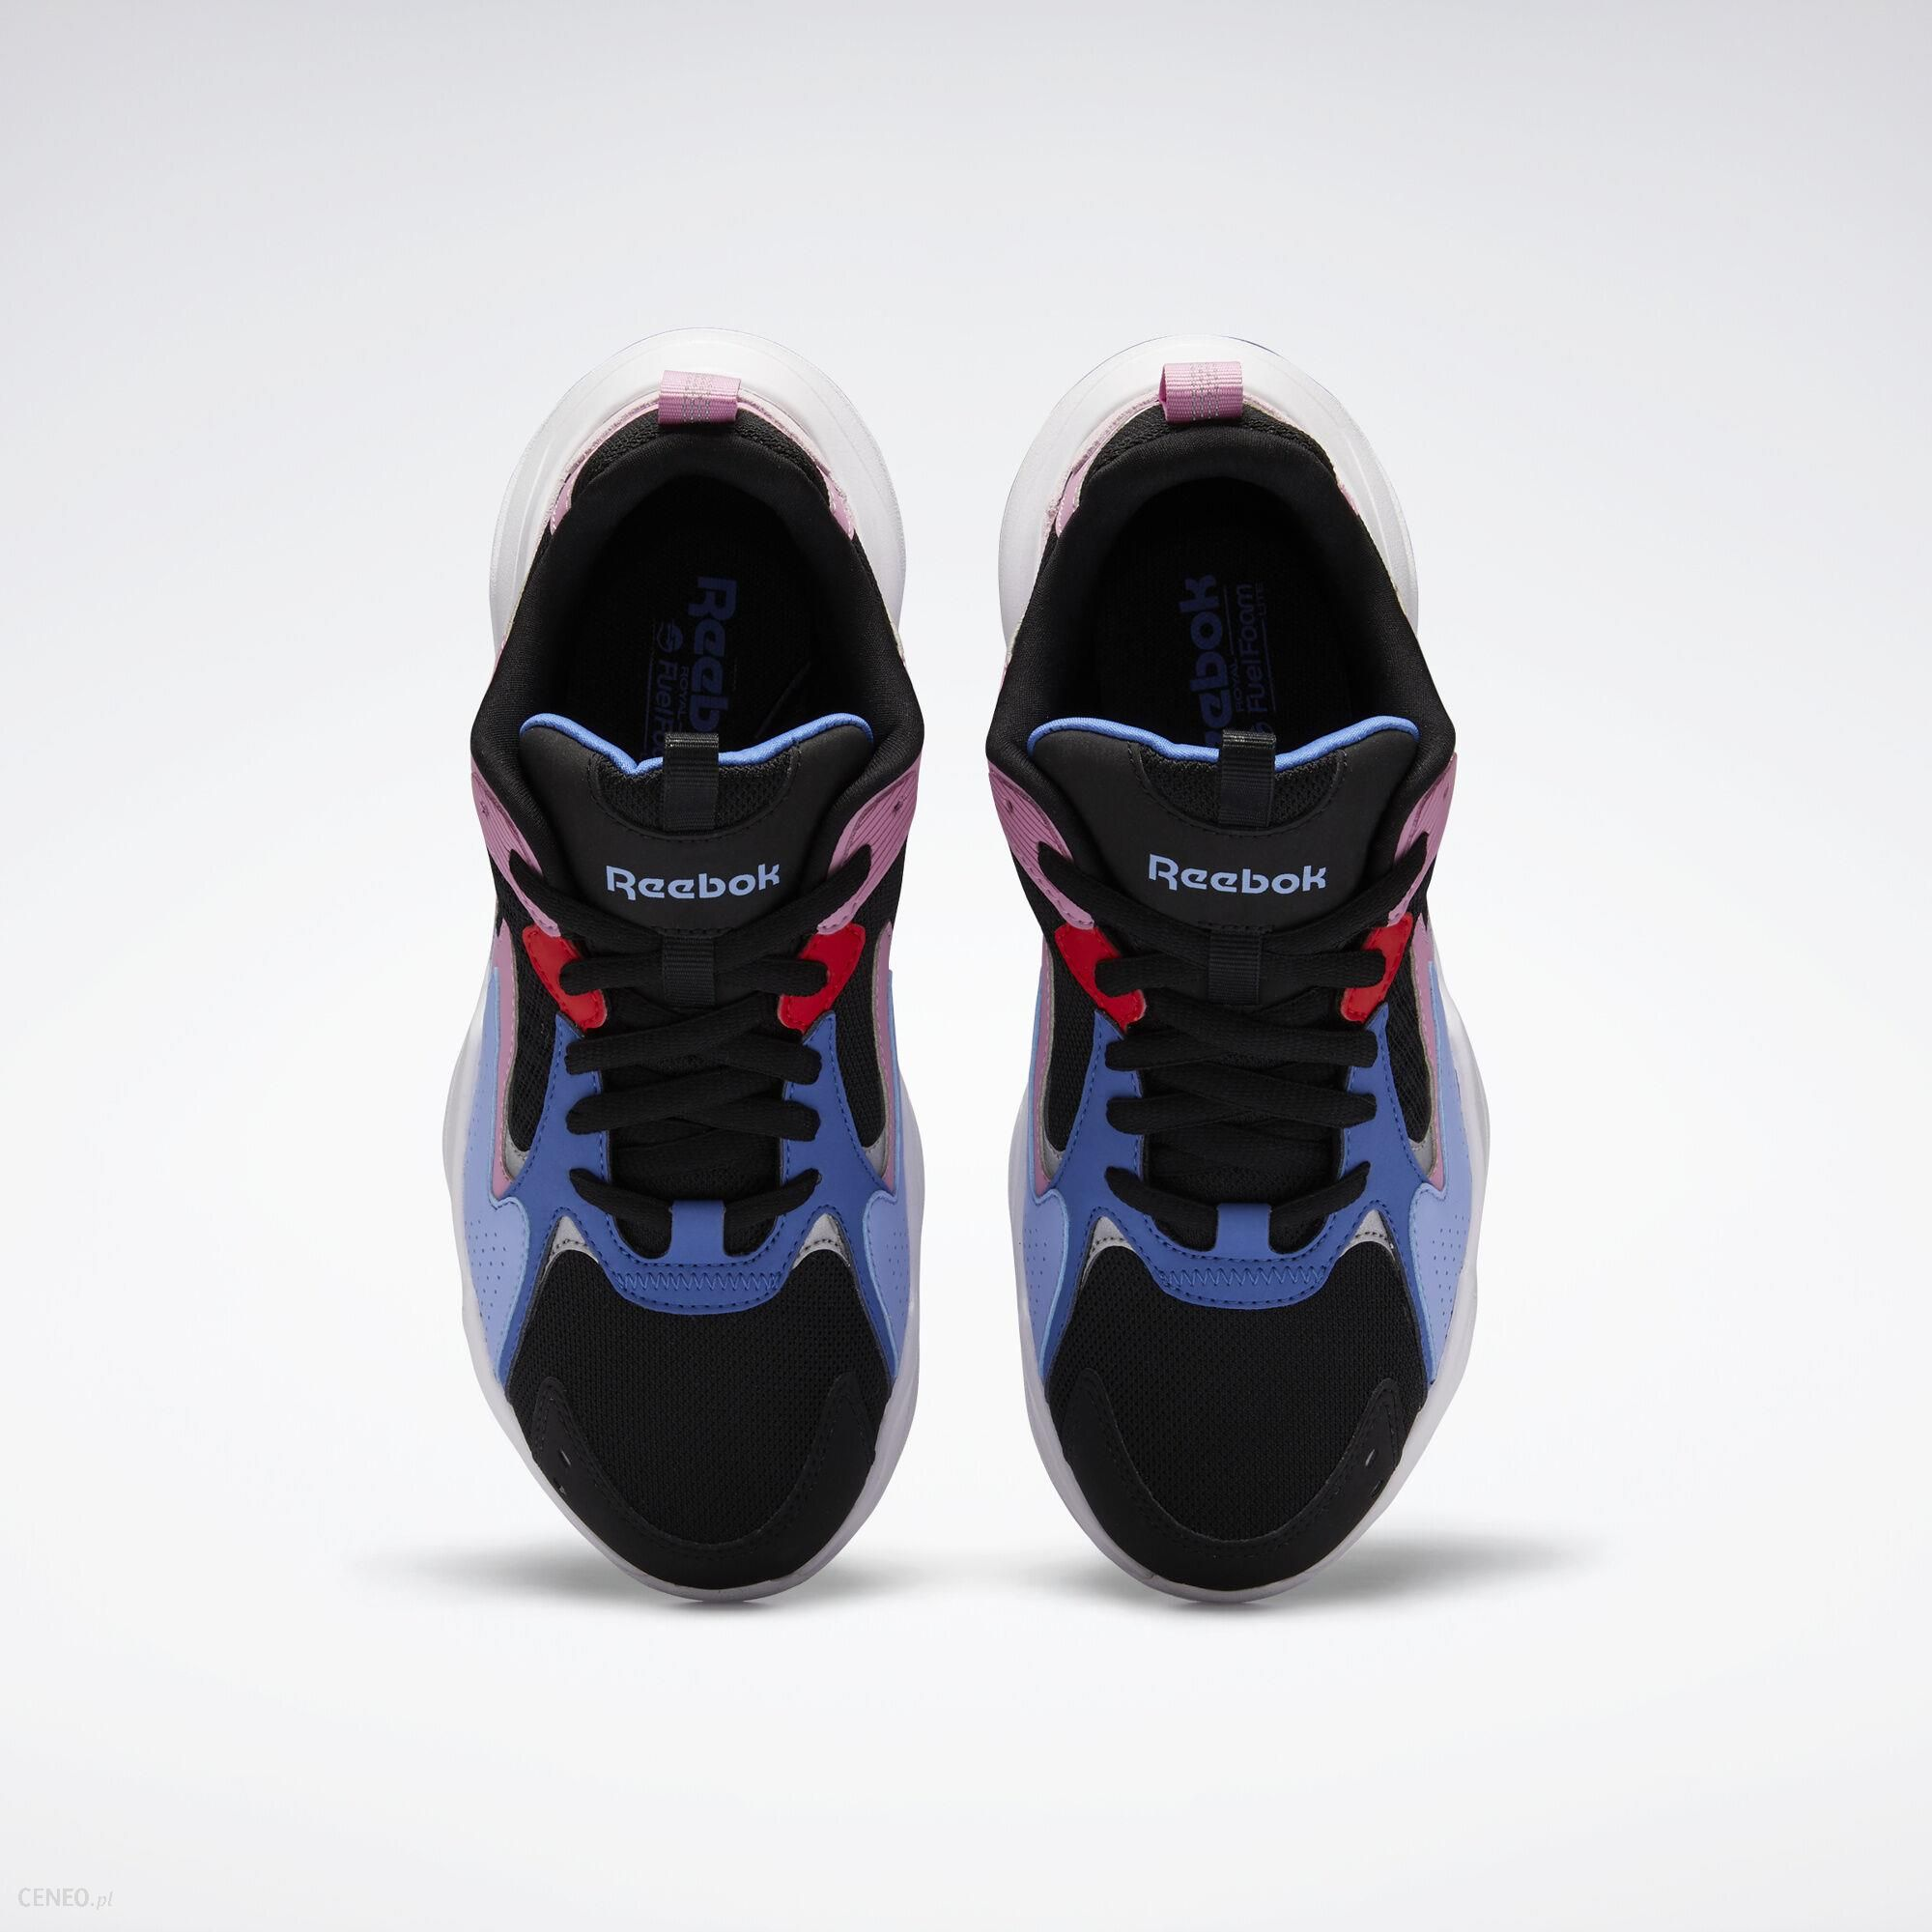 Reebok Buty Reebok Royal Turbo Impulse IB675